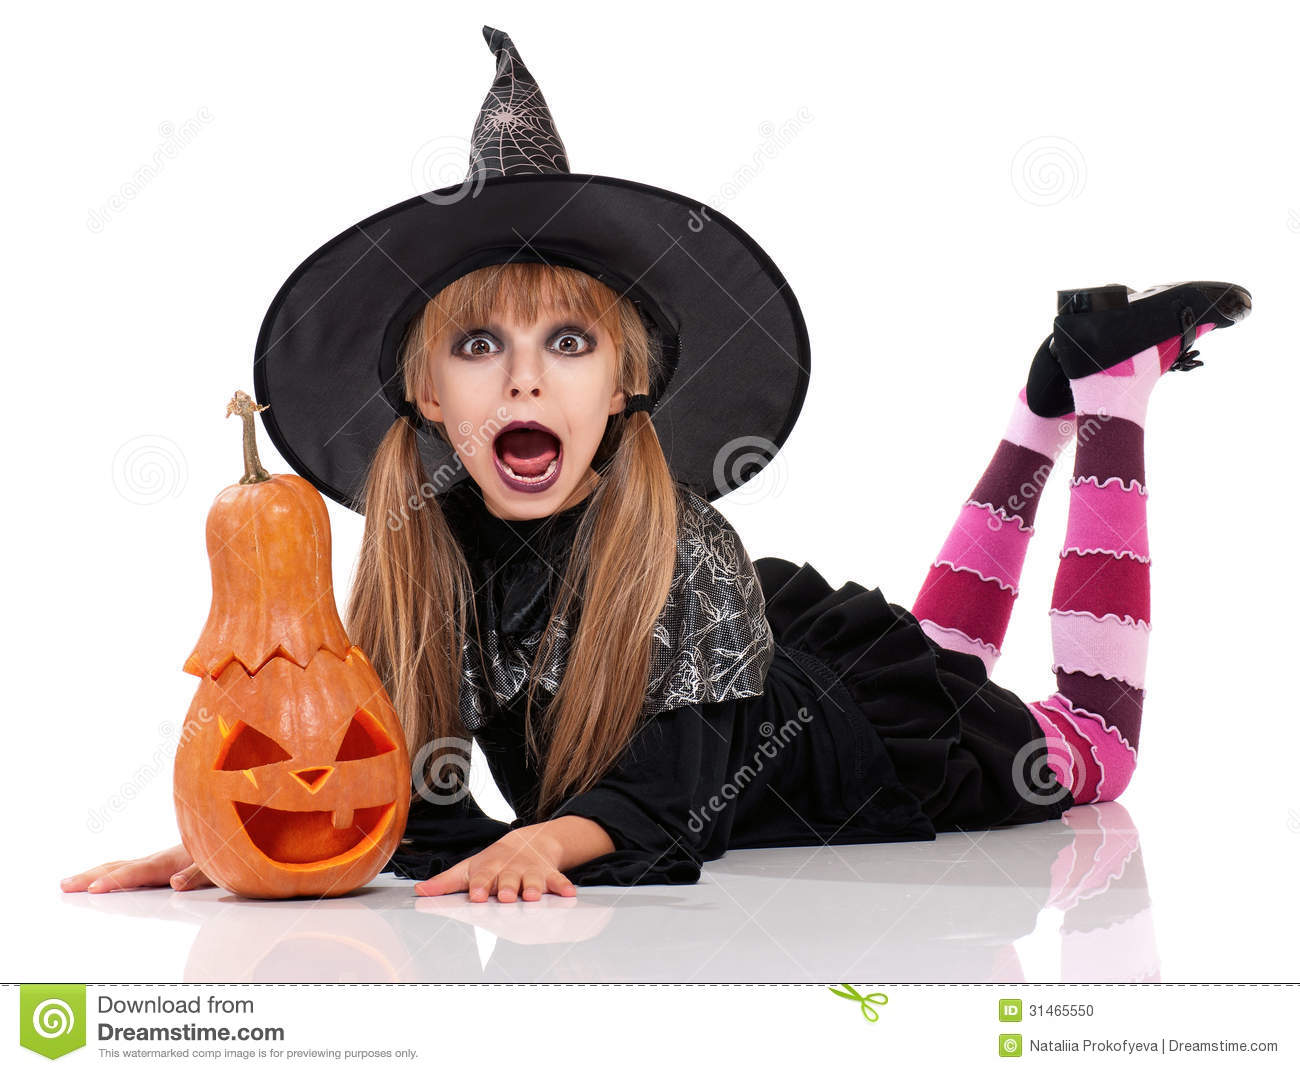 Watch little girl in halloween costume mp4 porn little girl in halloween costume video and get to mobile.